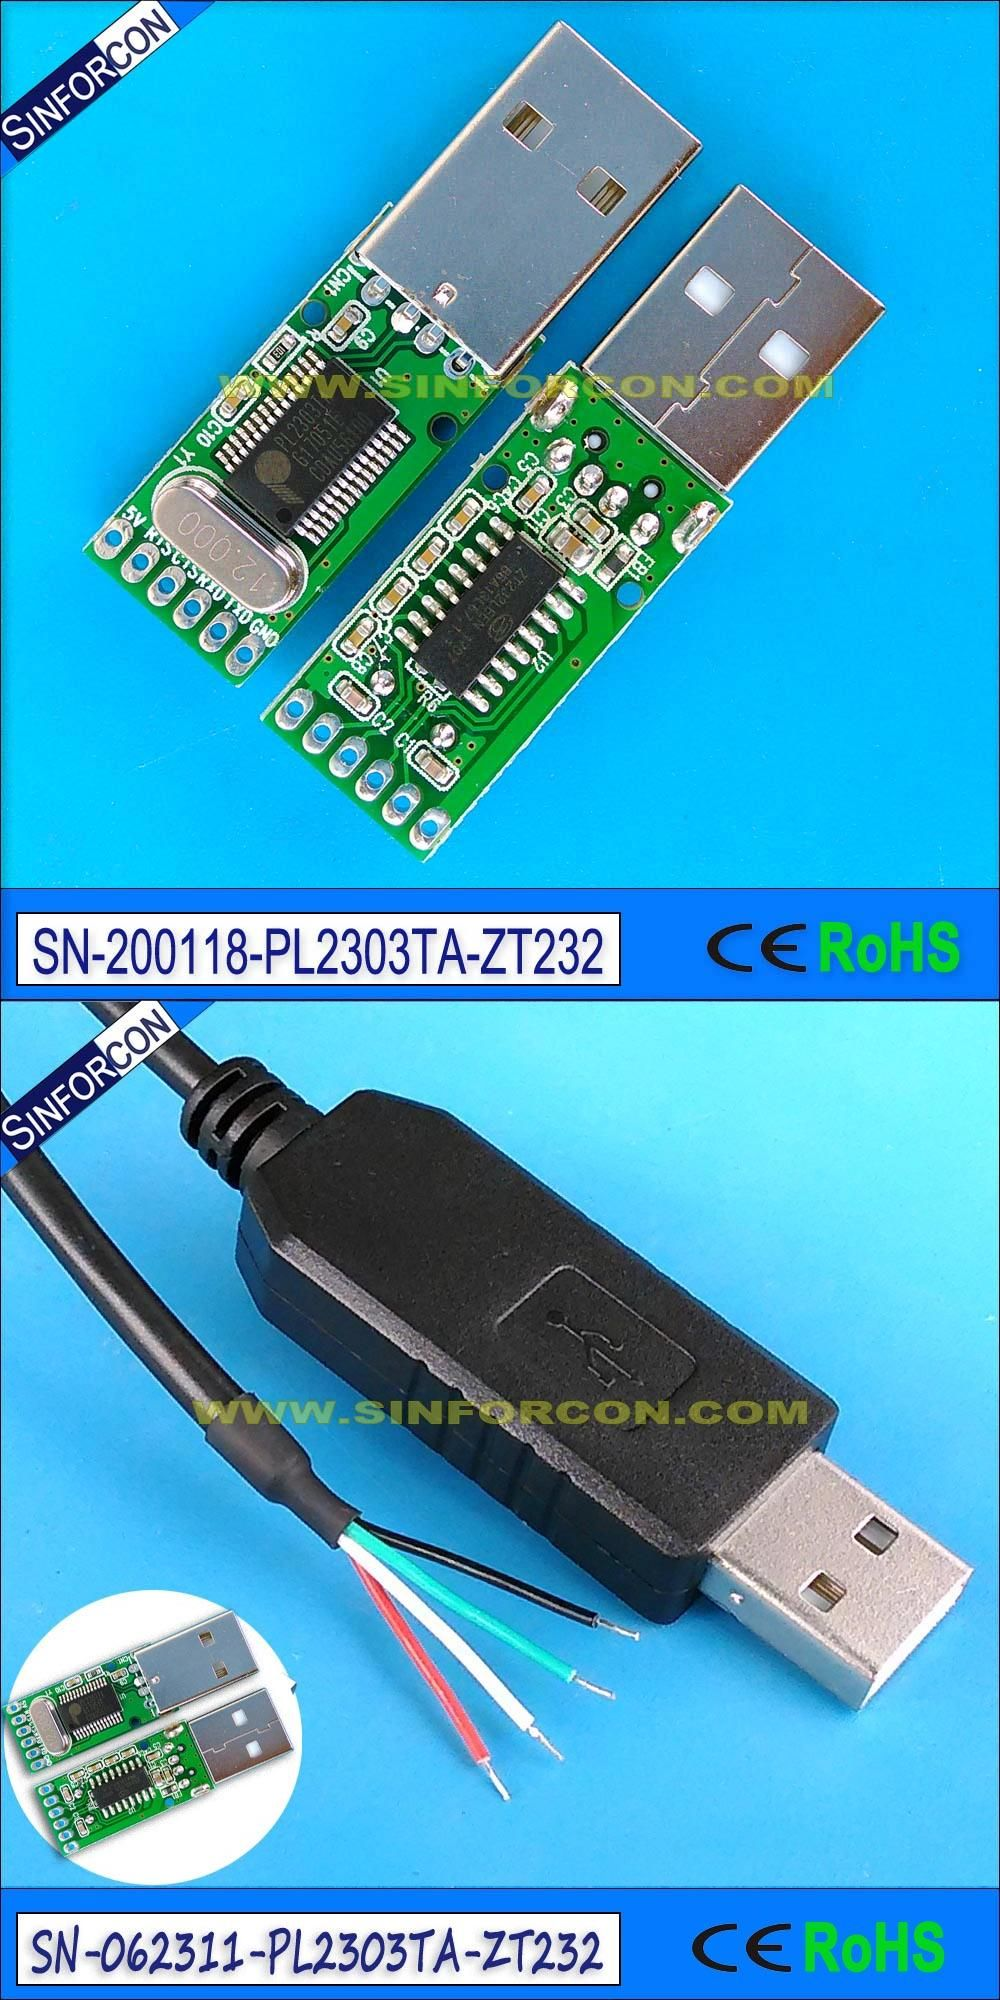 Prolific Usb To Serial Wiring Diagram Diy Enthusiasts Rs232 Rj45 Pl2303ta Adapter Pl2303 Wire End Cable Rh Pinterest Com Db9 Pinout